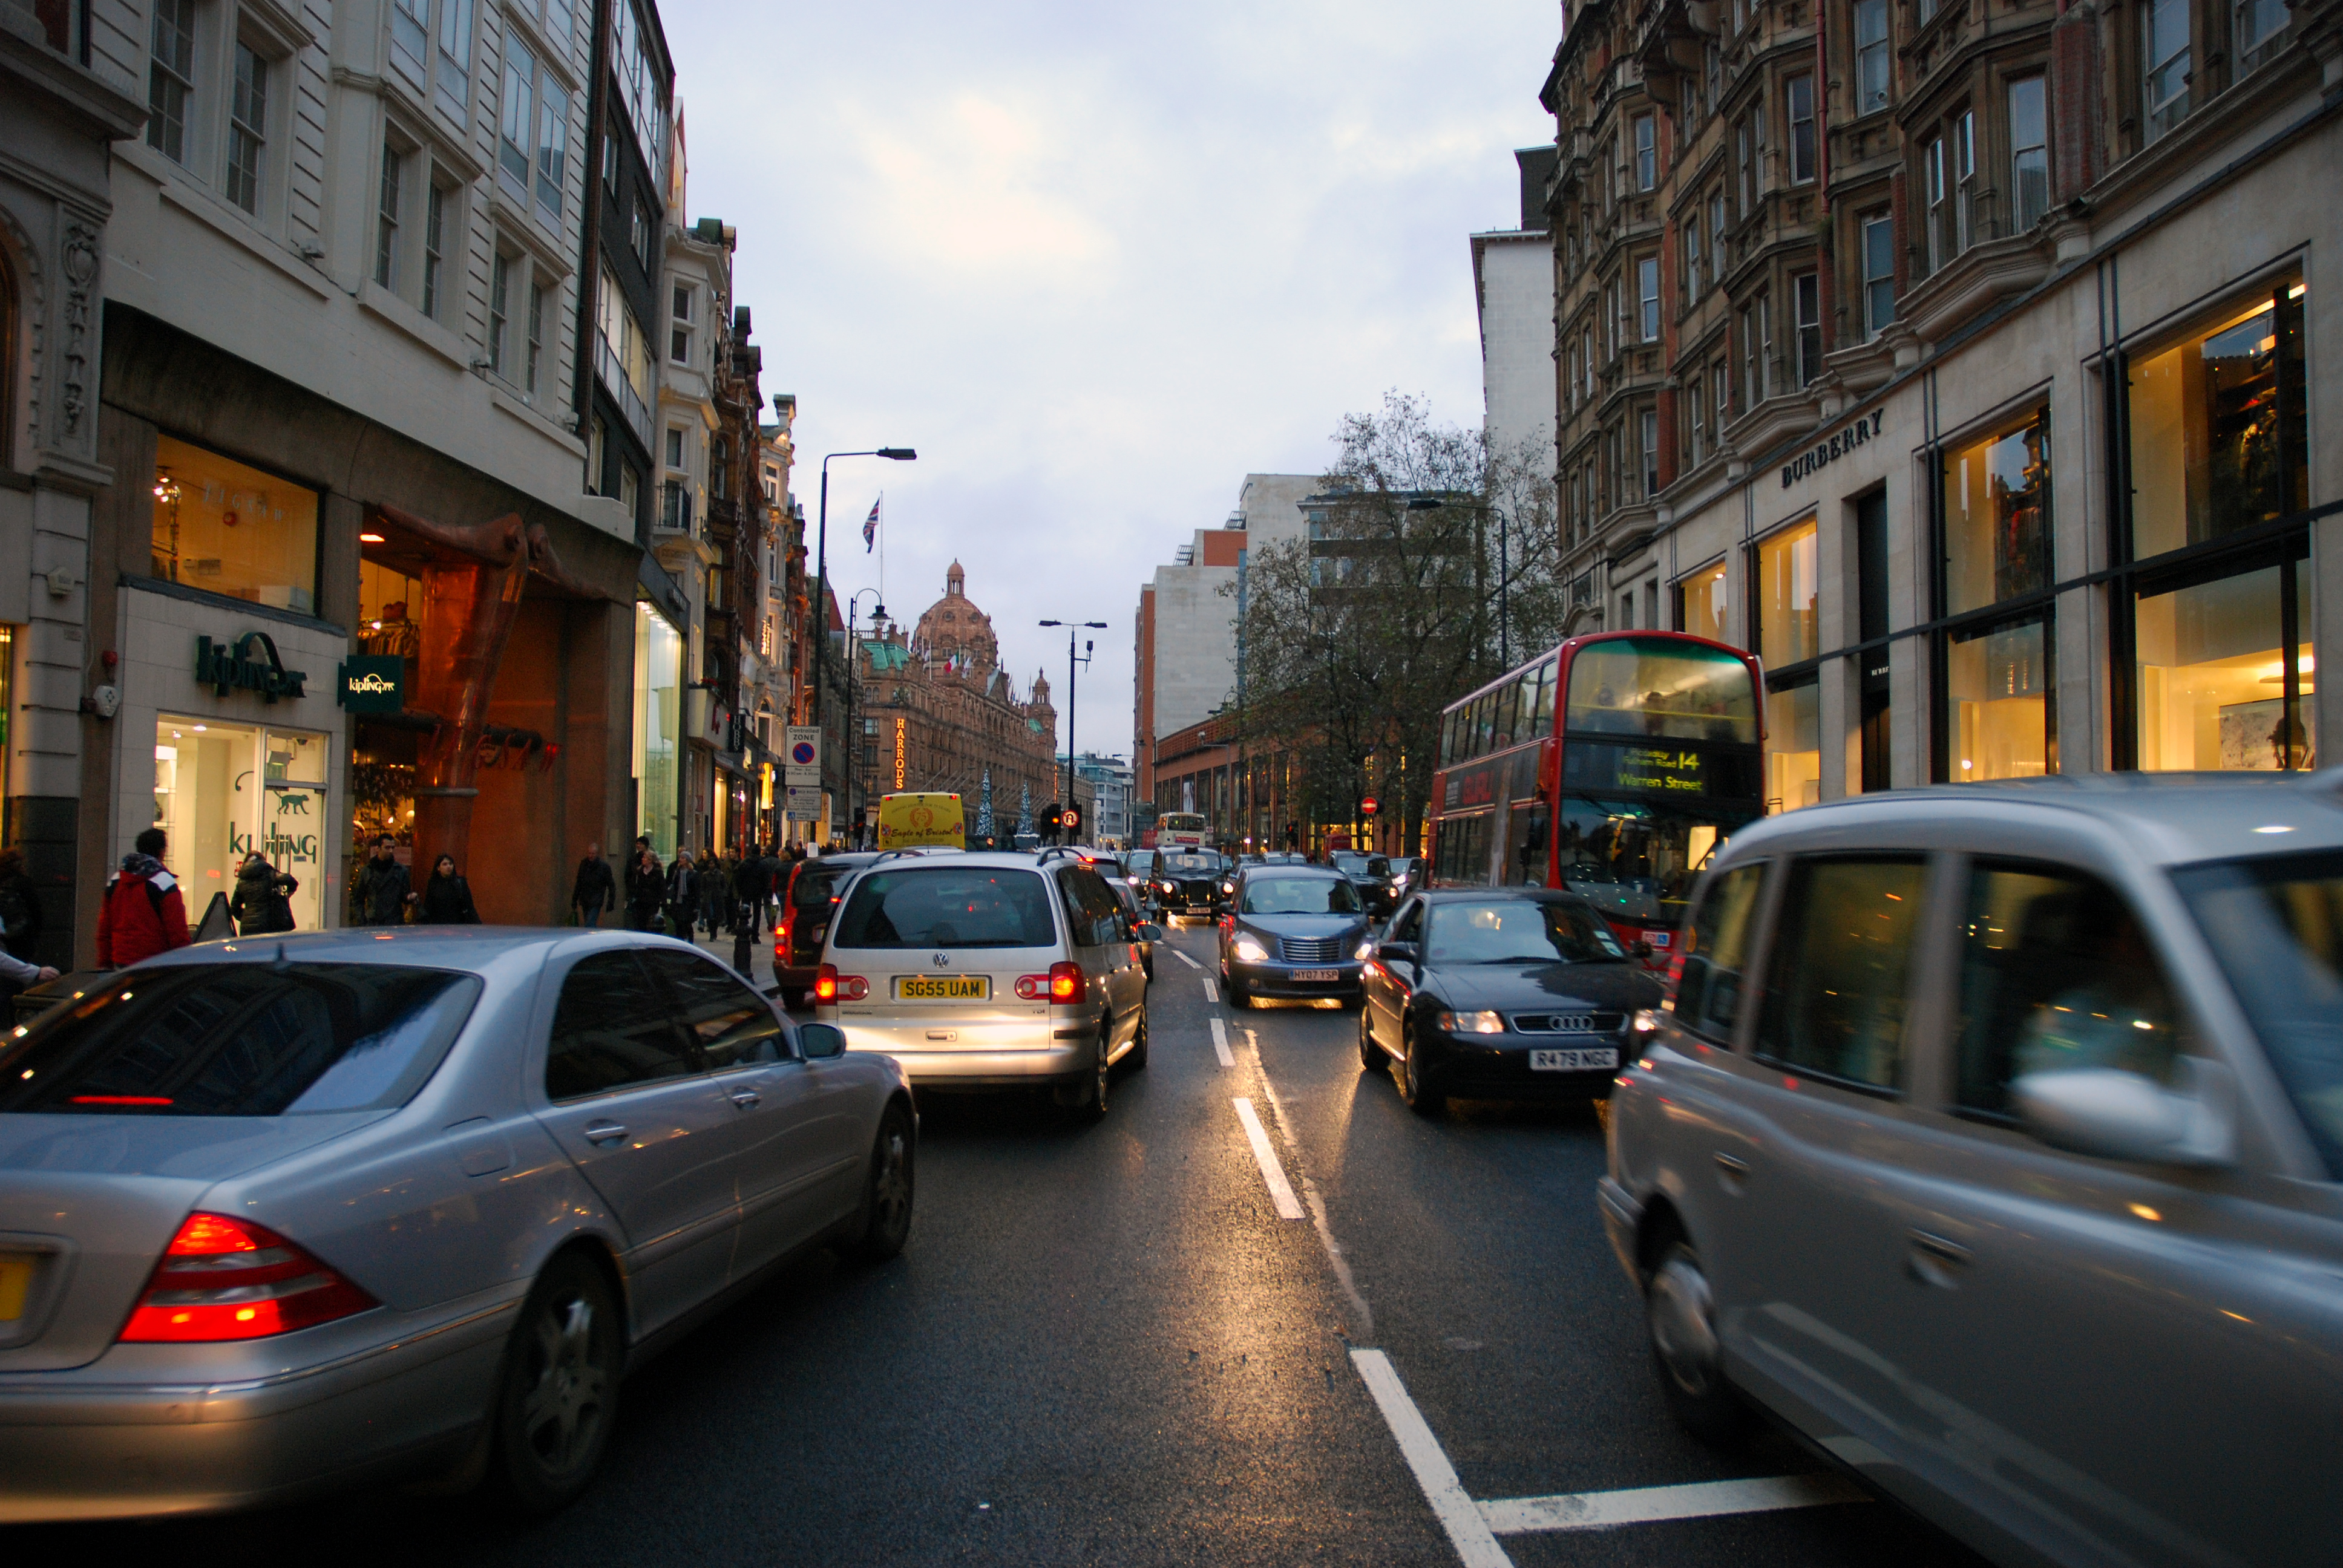 File:Busy road (3071960318).jpg - Wikimedia Commons